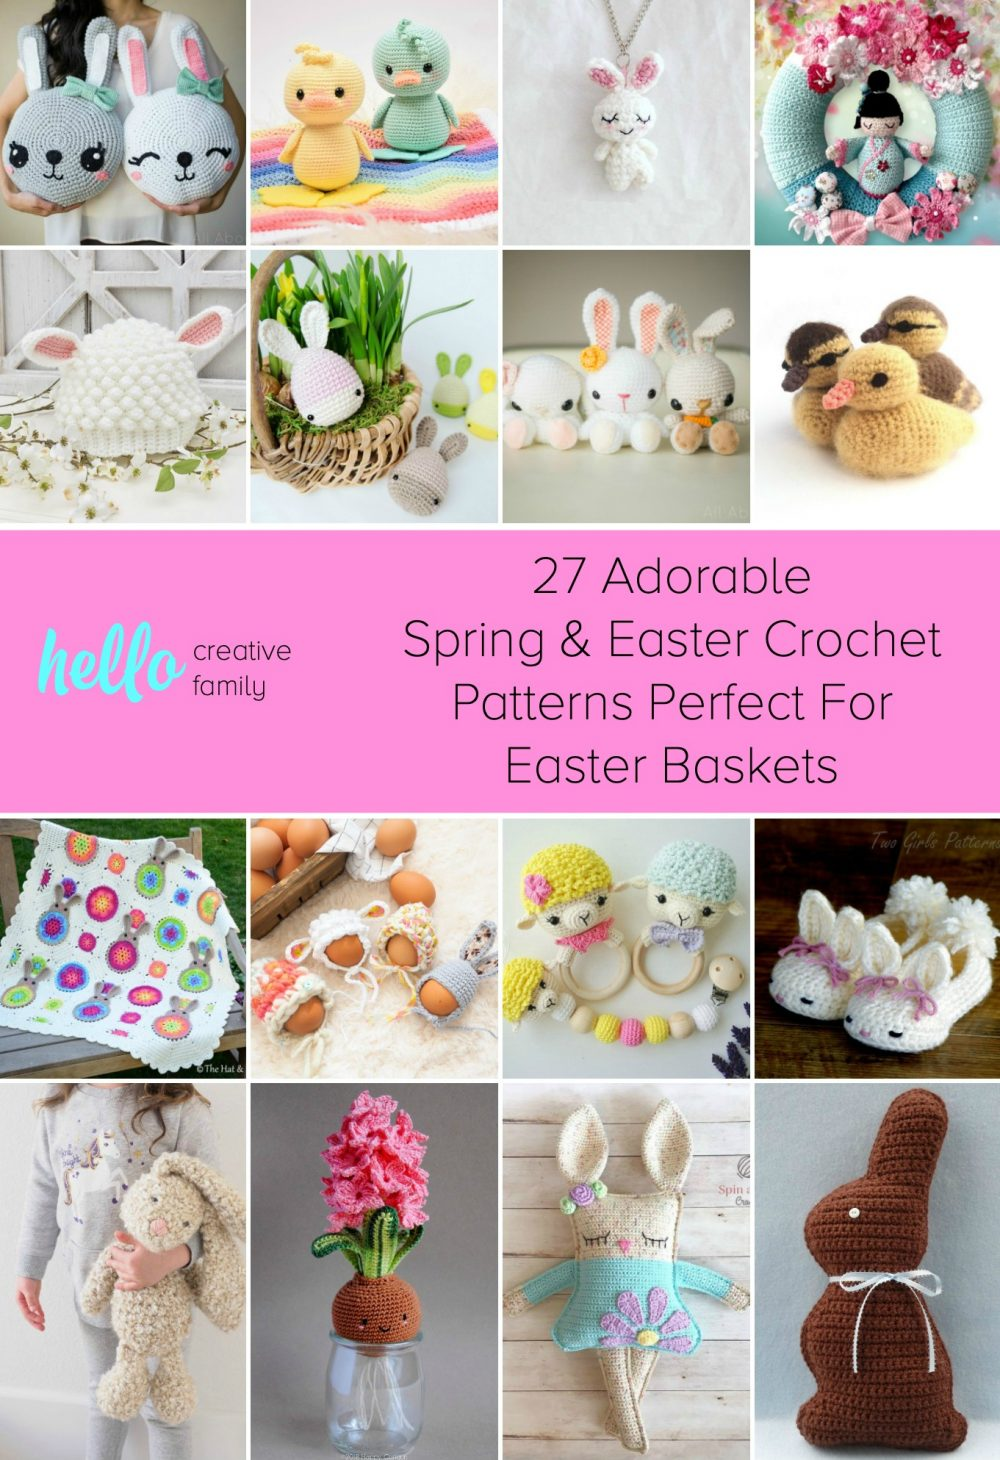 Stuff those Easter Basket with Non-Candy Handmade Gifts! We're sharing 27 Spring and Easter Crochet Patterns that your family will love! Adorable ideas for all levels from beginner crocheters to advanced! #Easter #Crochet #Craft #CrochetPatterns